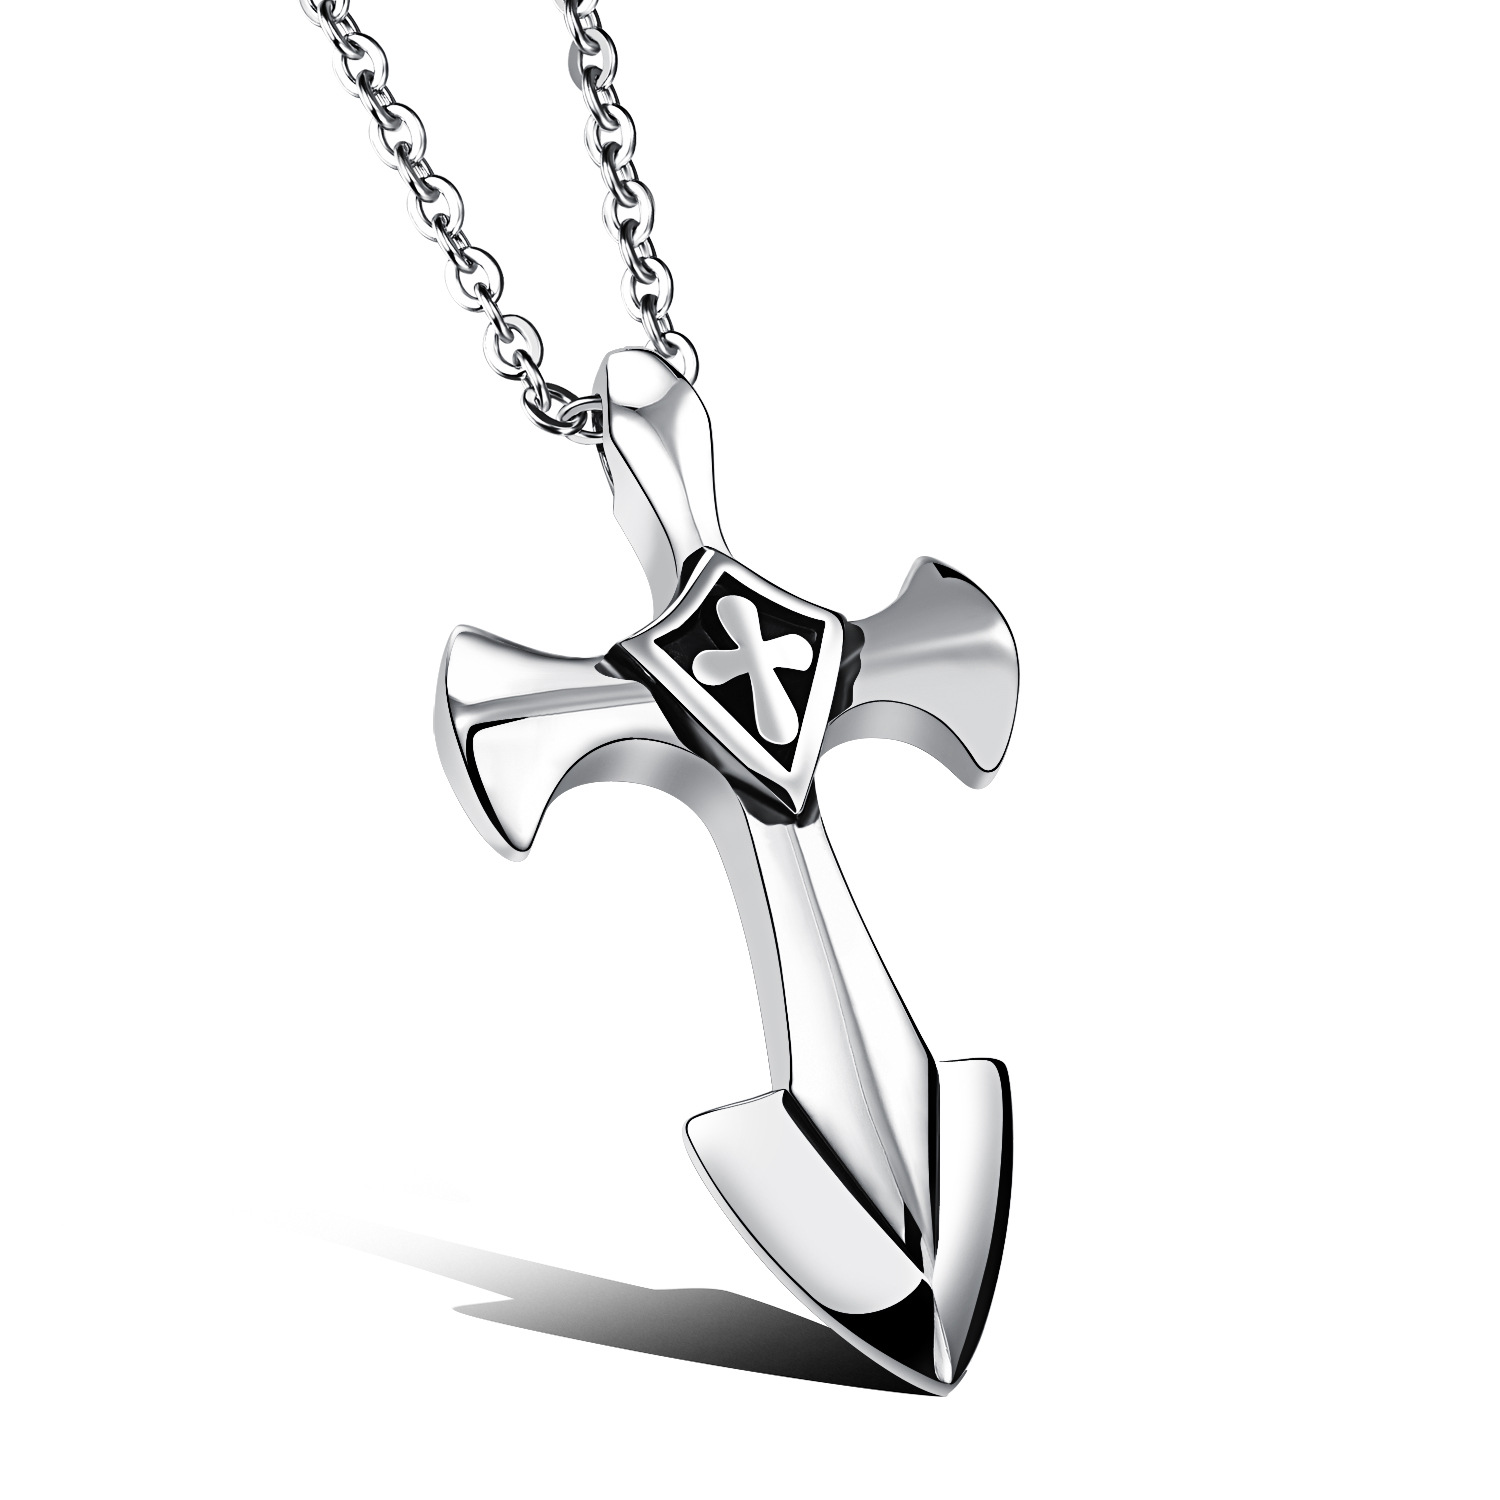 pendant necklaces enlarged jewelry products necklace i jerusalem cross reiss